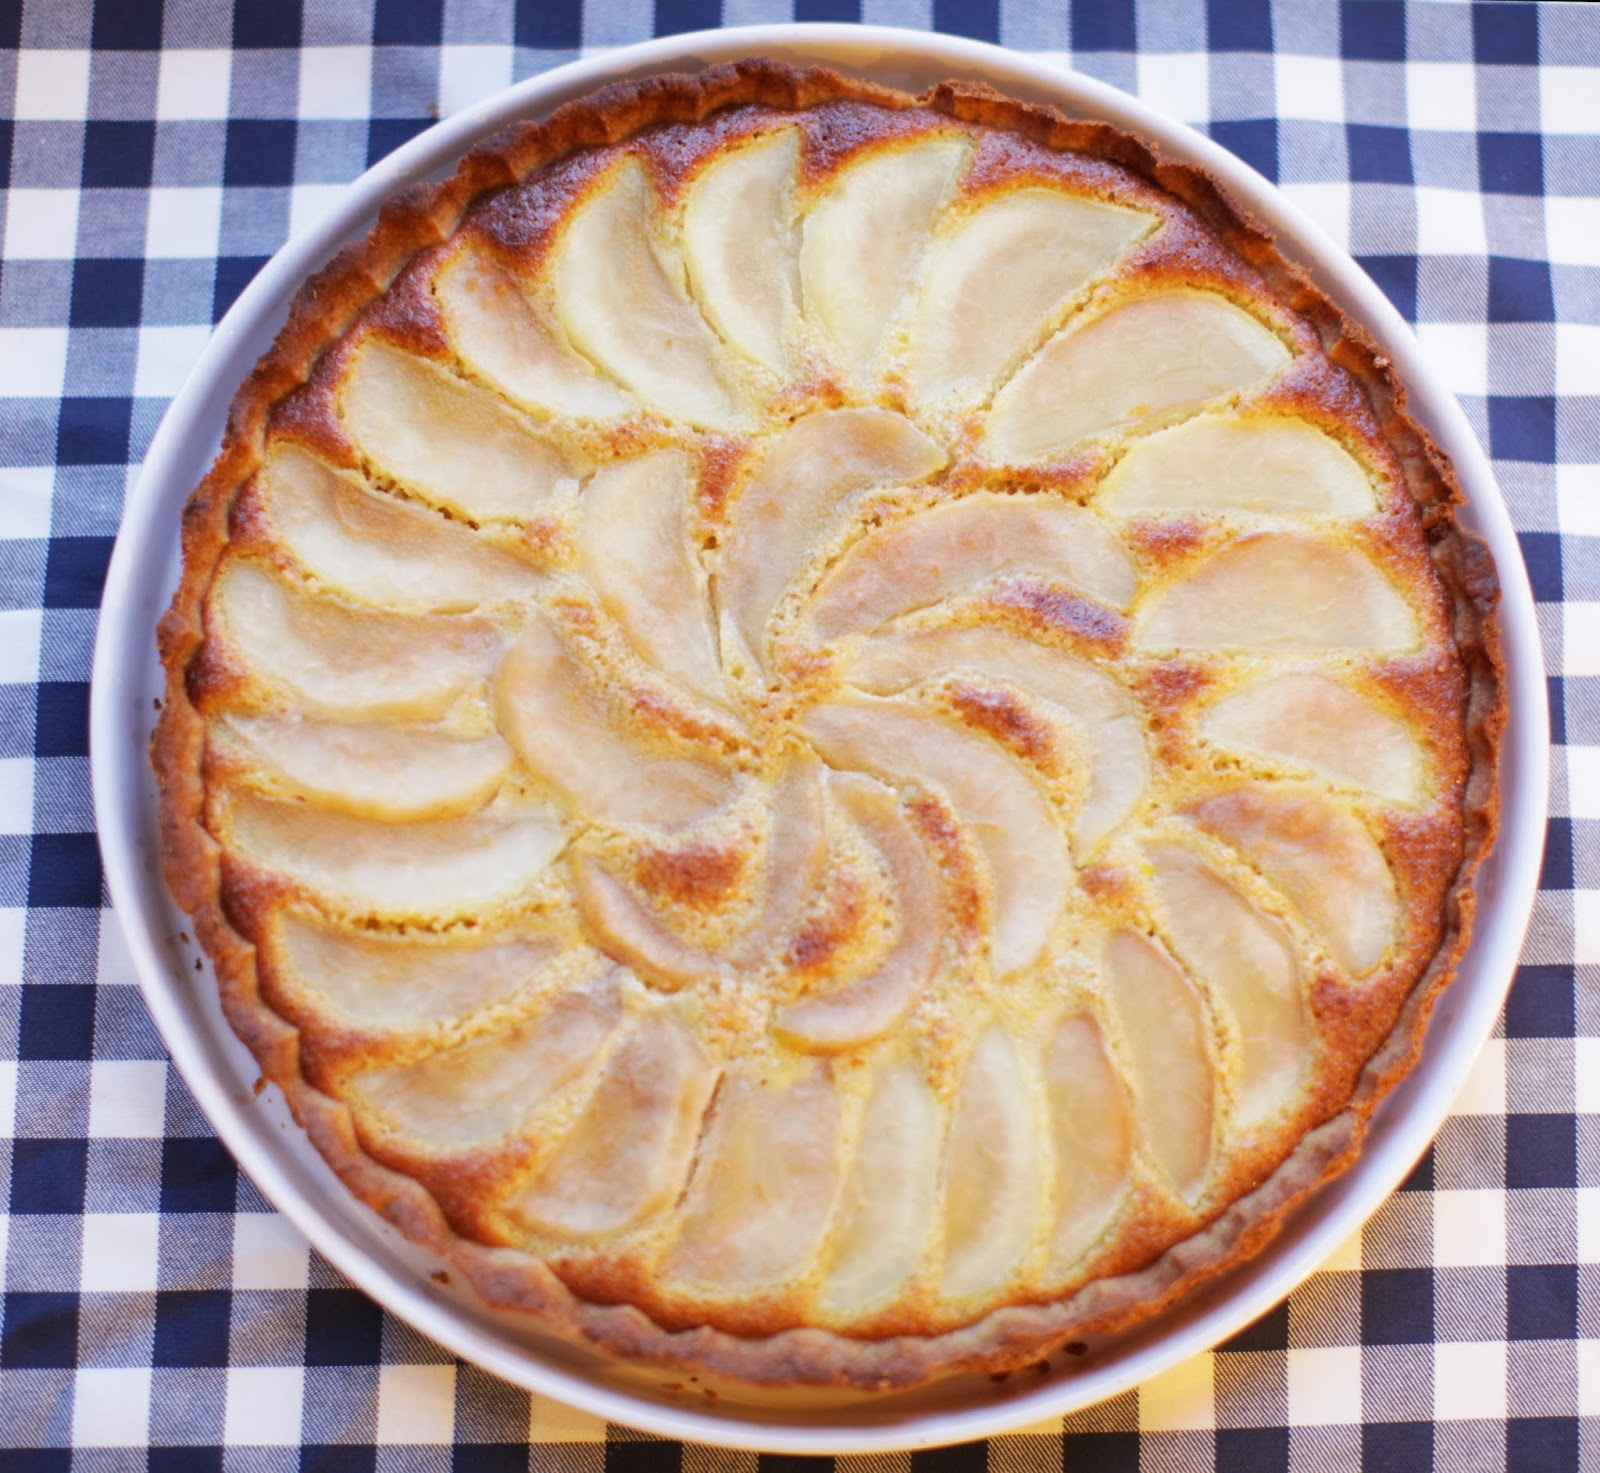 http://our-favorite-apple-pie.blogspot.com/2014/01/migdaowa-tarta-z-gruszkami.html